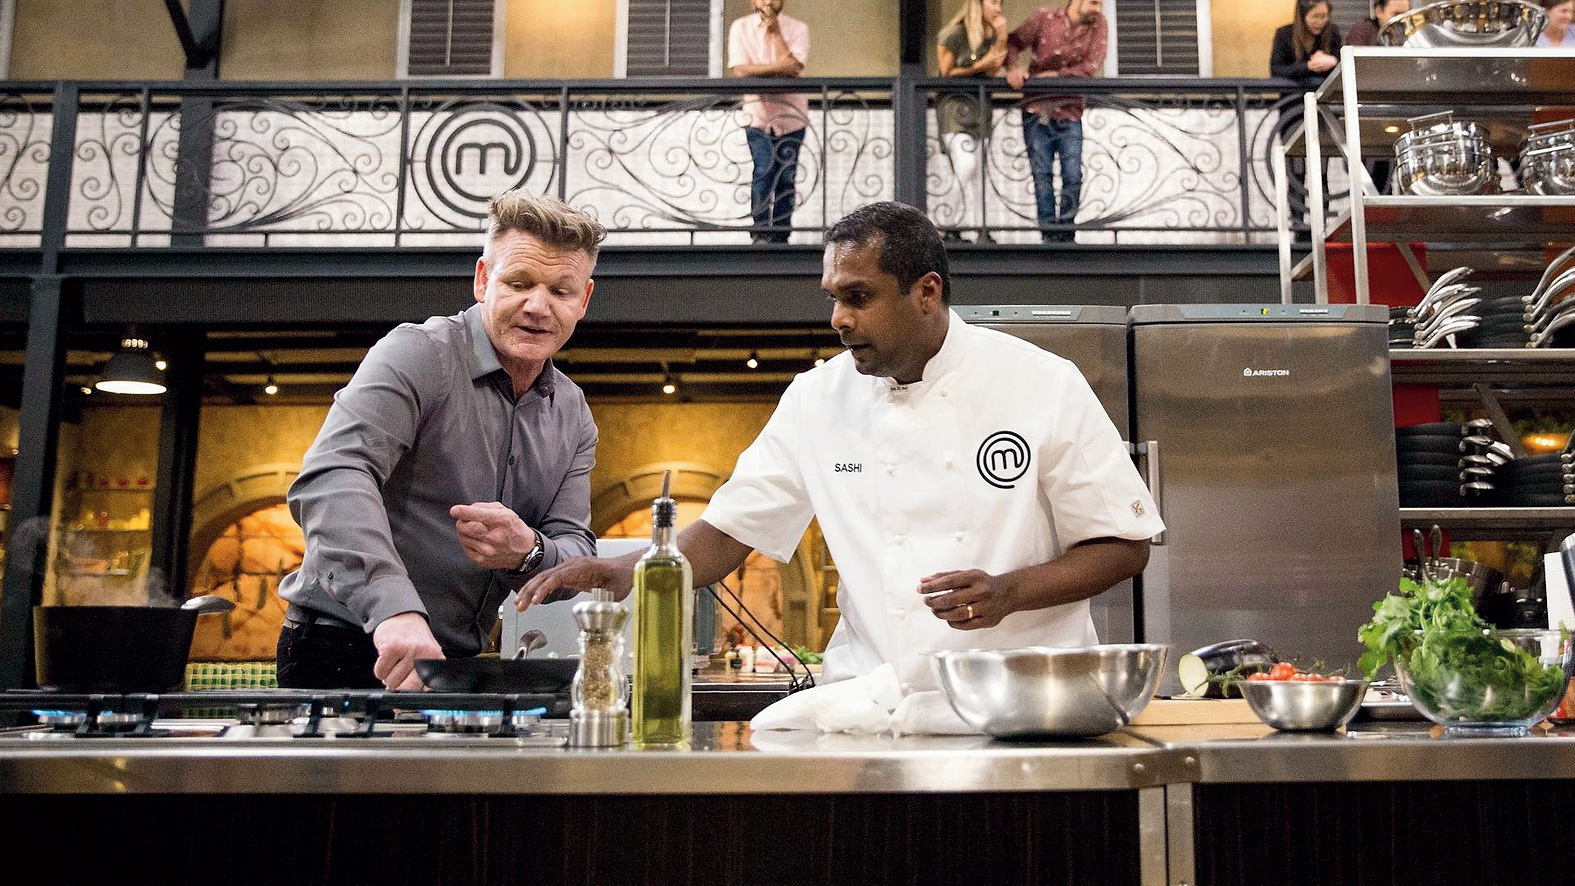 With Gordon Ramsay on the show